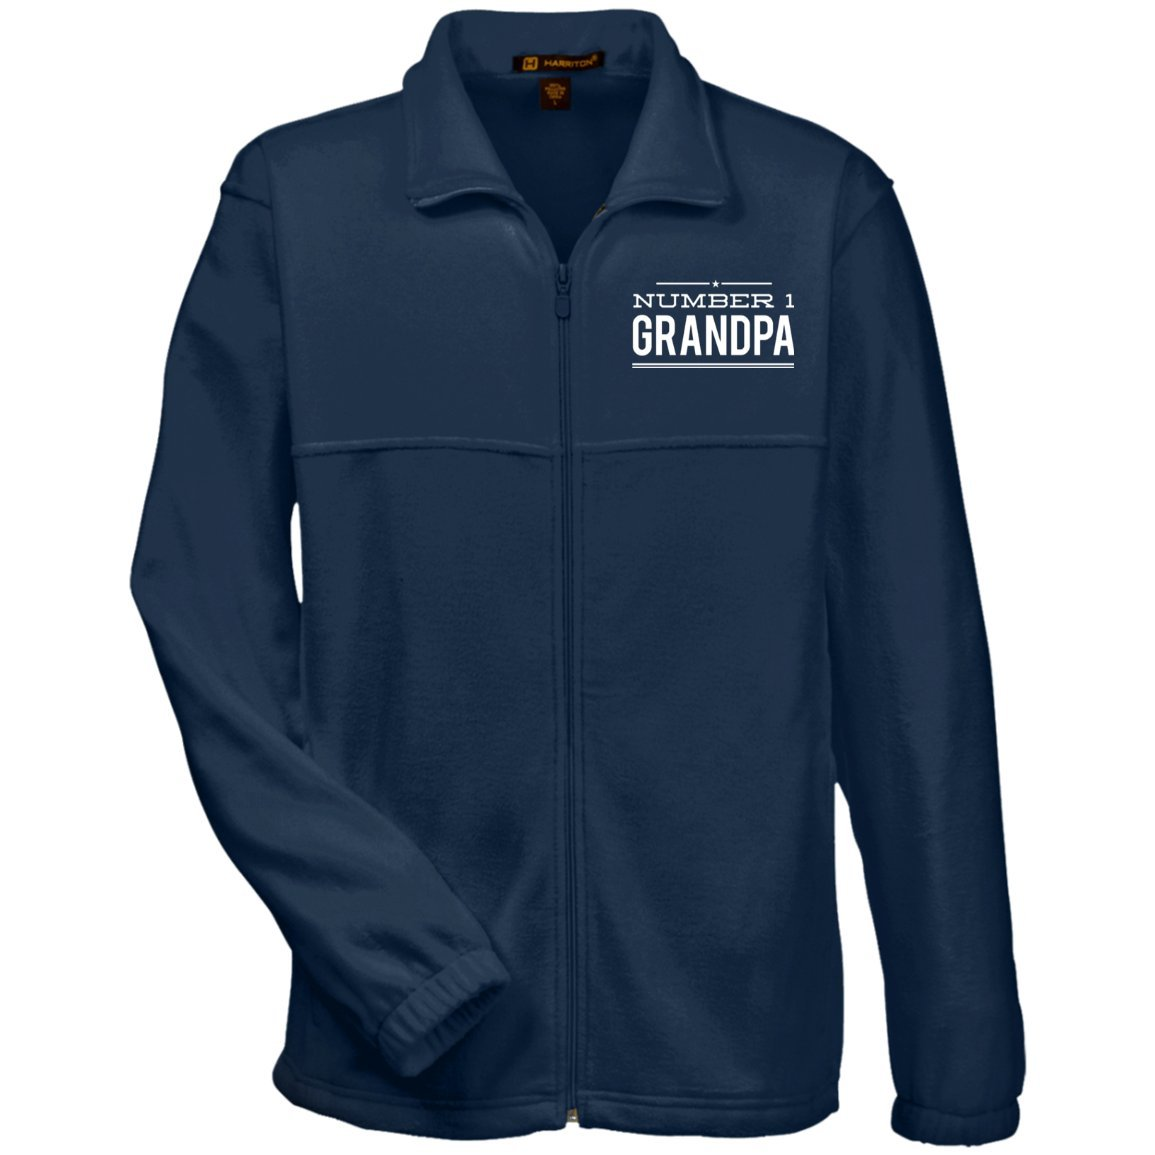 Number 1 Grandpa - Harriton Men's Embroidered Fleece Jacket - Great gift  for Grandpa-For